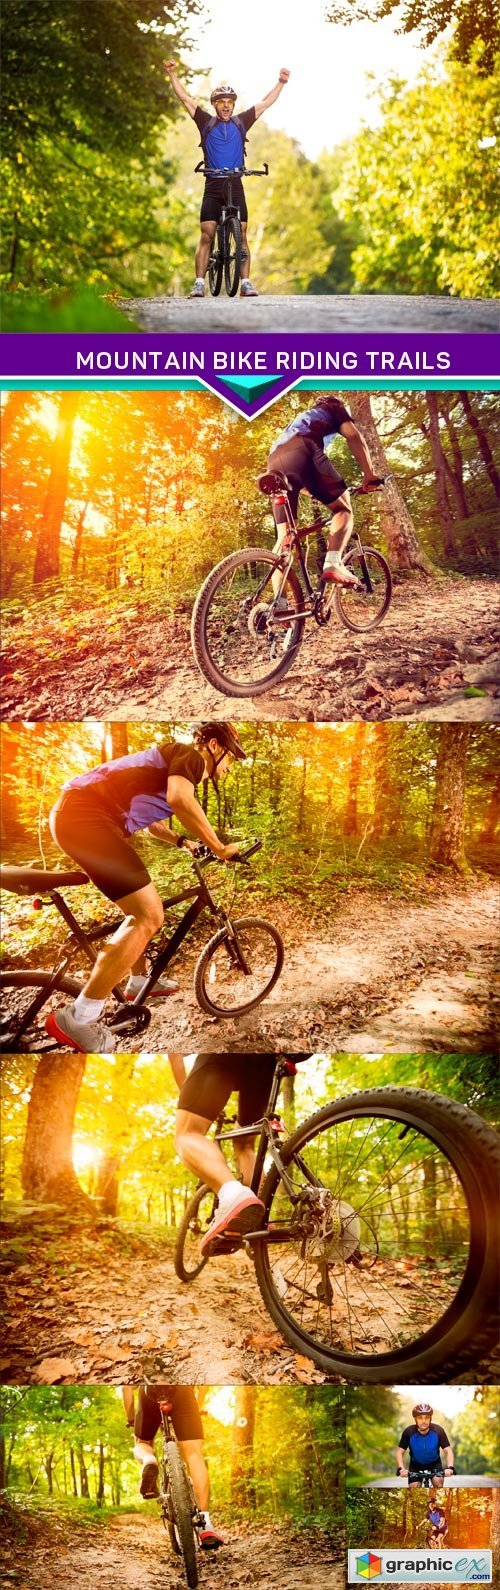 Mountain bike riding trails 7X JPEG